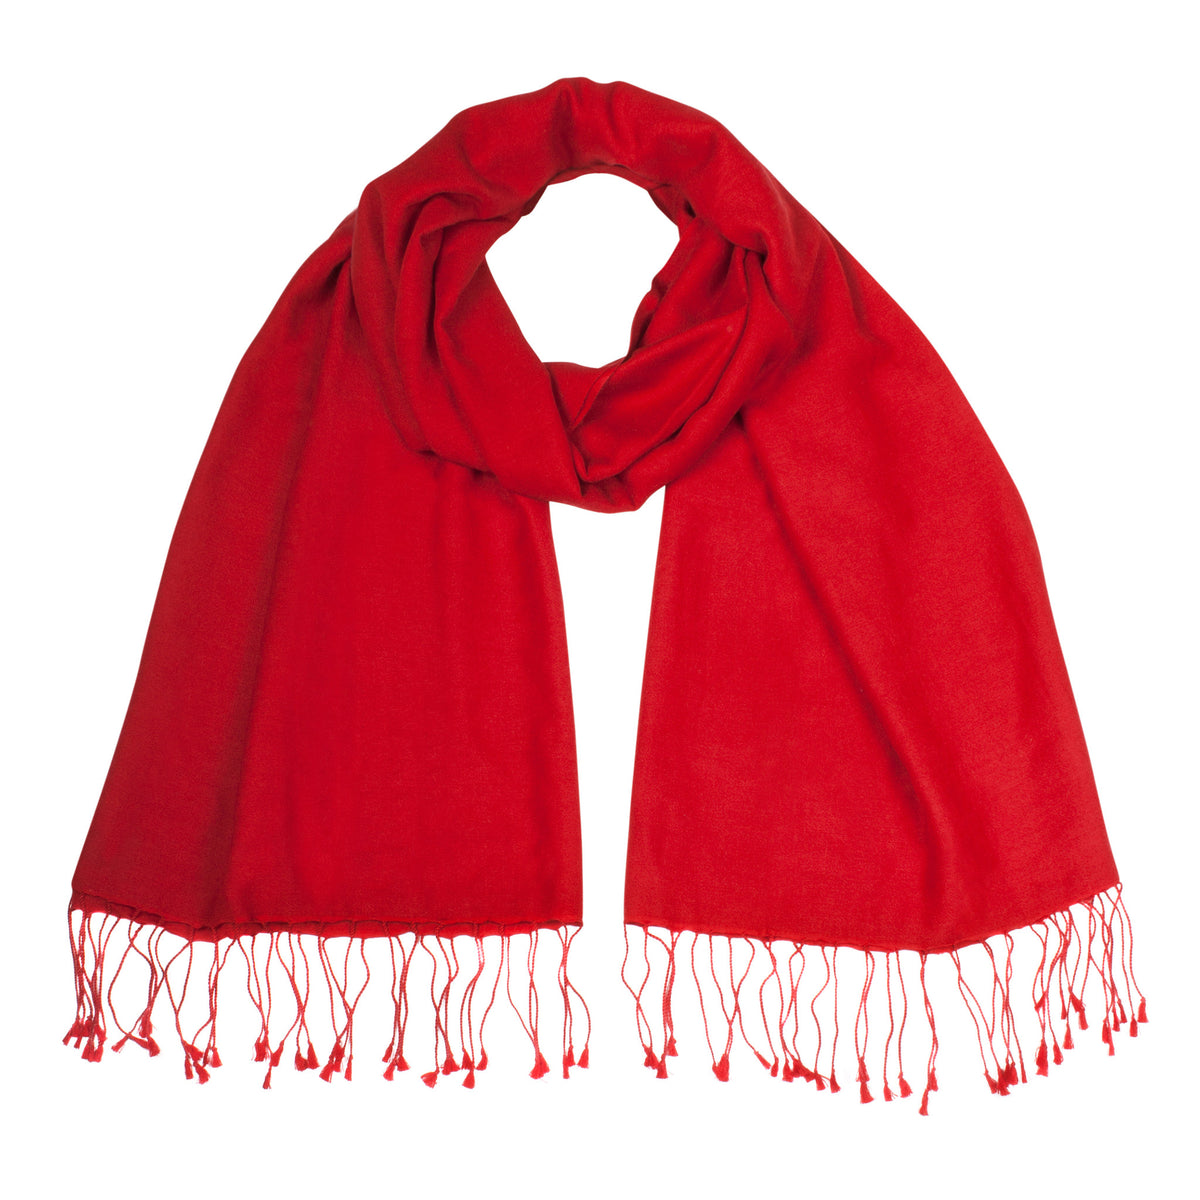 Red Pashsmina Stole | buy now at The Cashmere Choice London